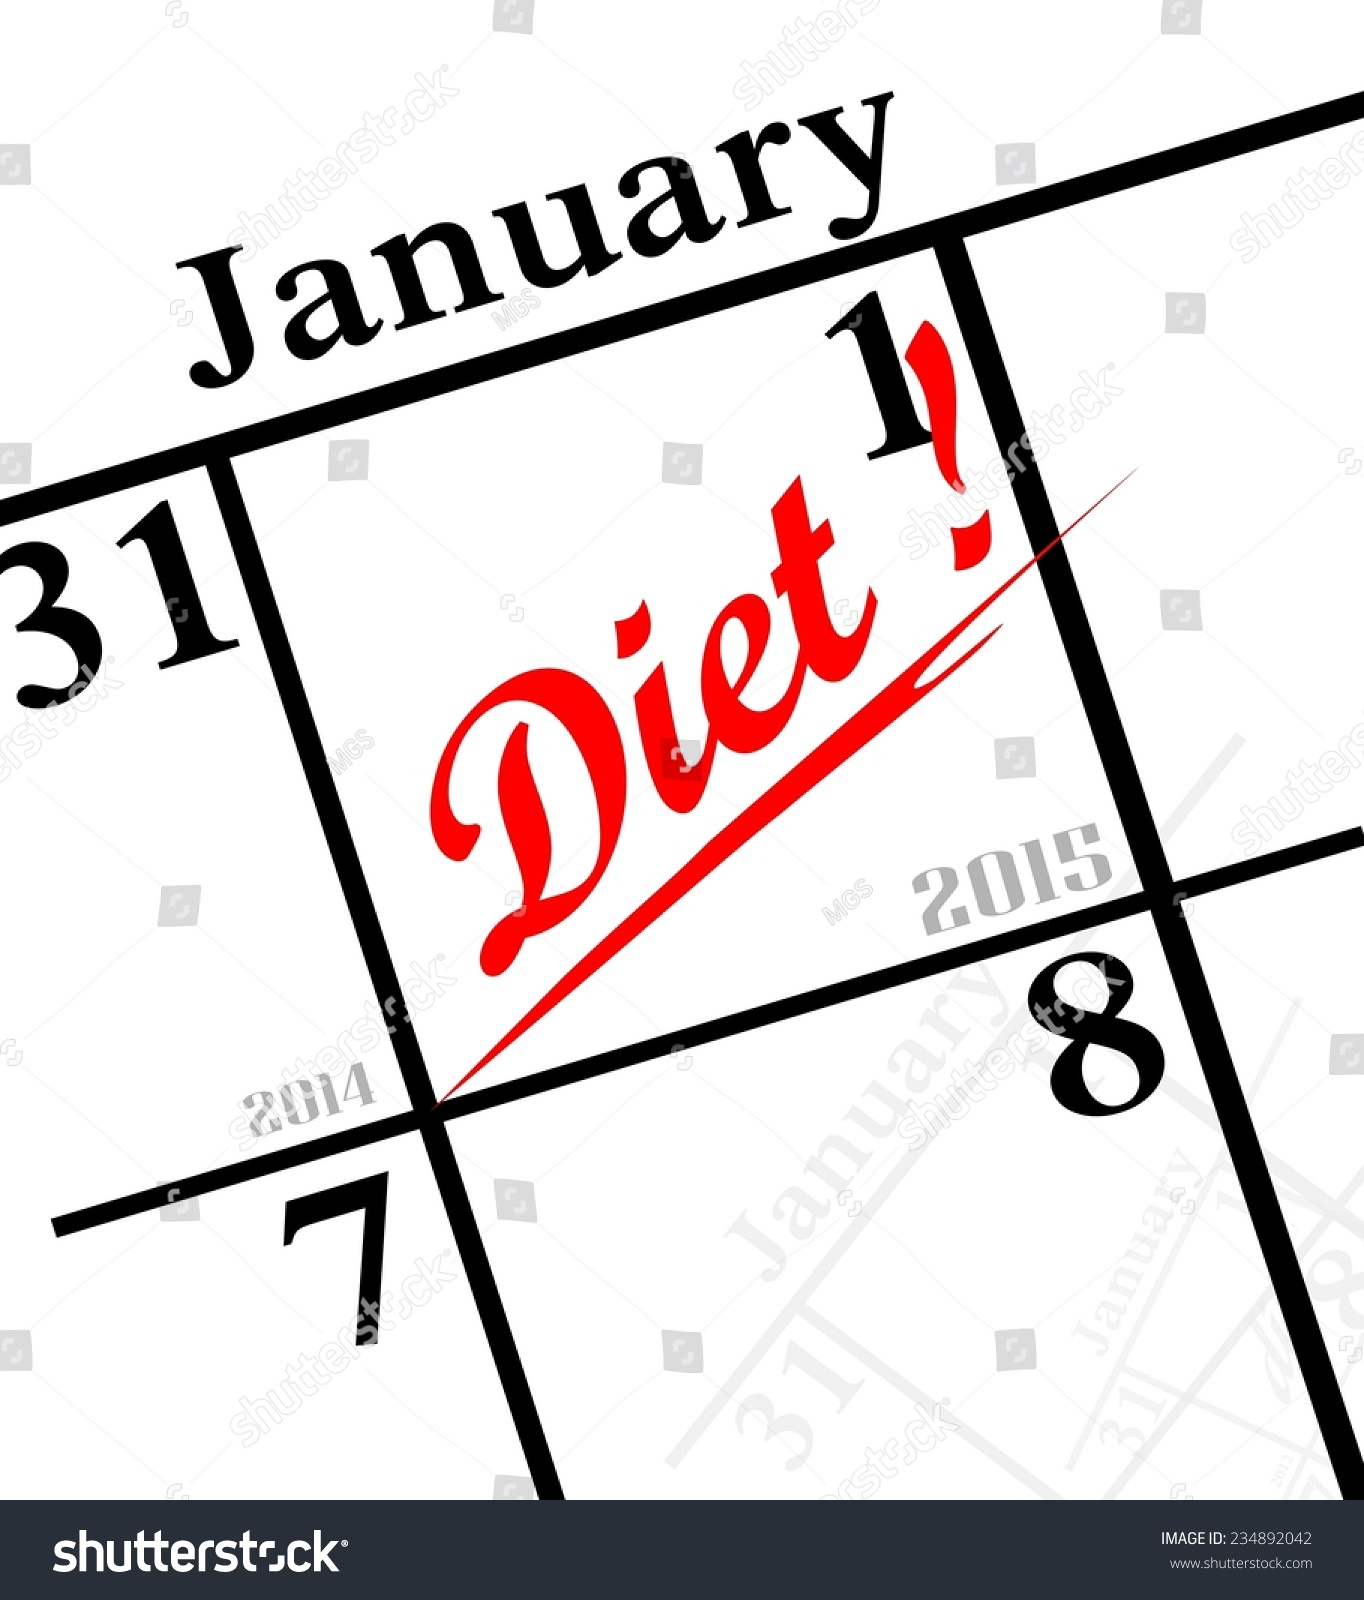 2015 new years resolution diet stock photo 234892042